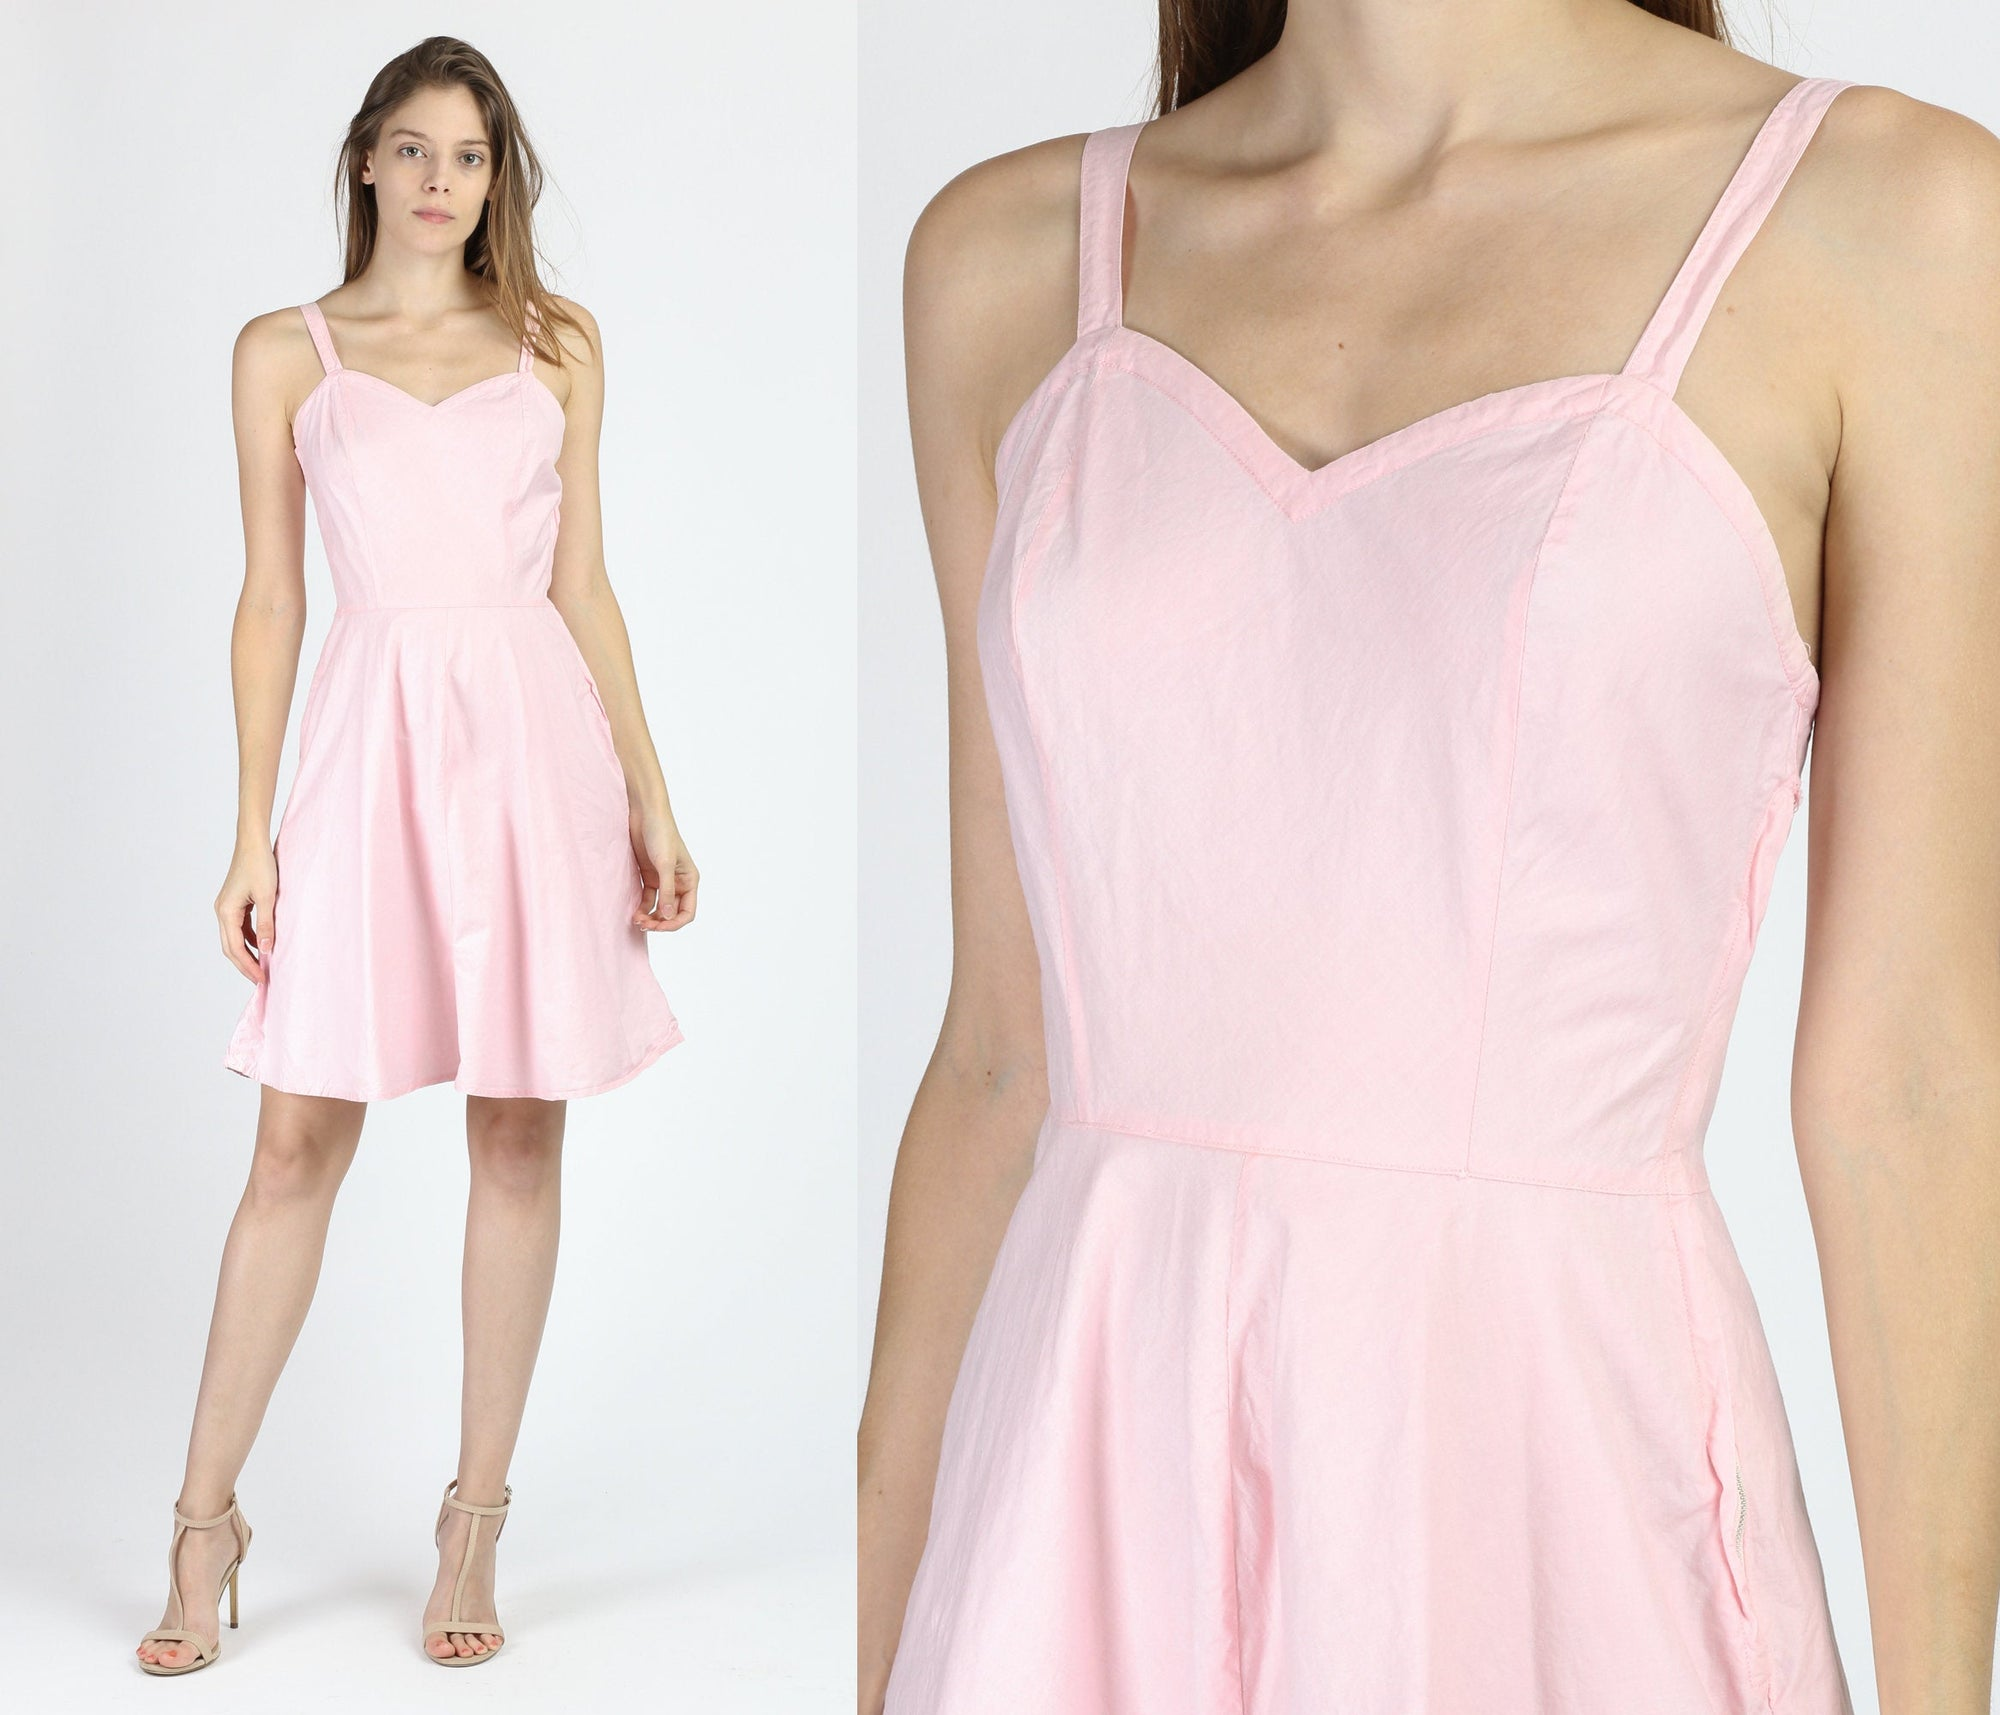 40s 50s Pink Cotton Slip Dress - XS to Small